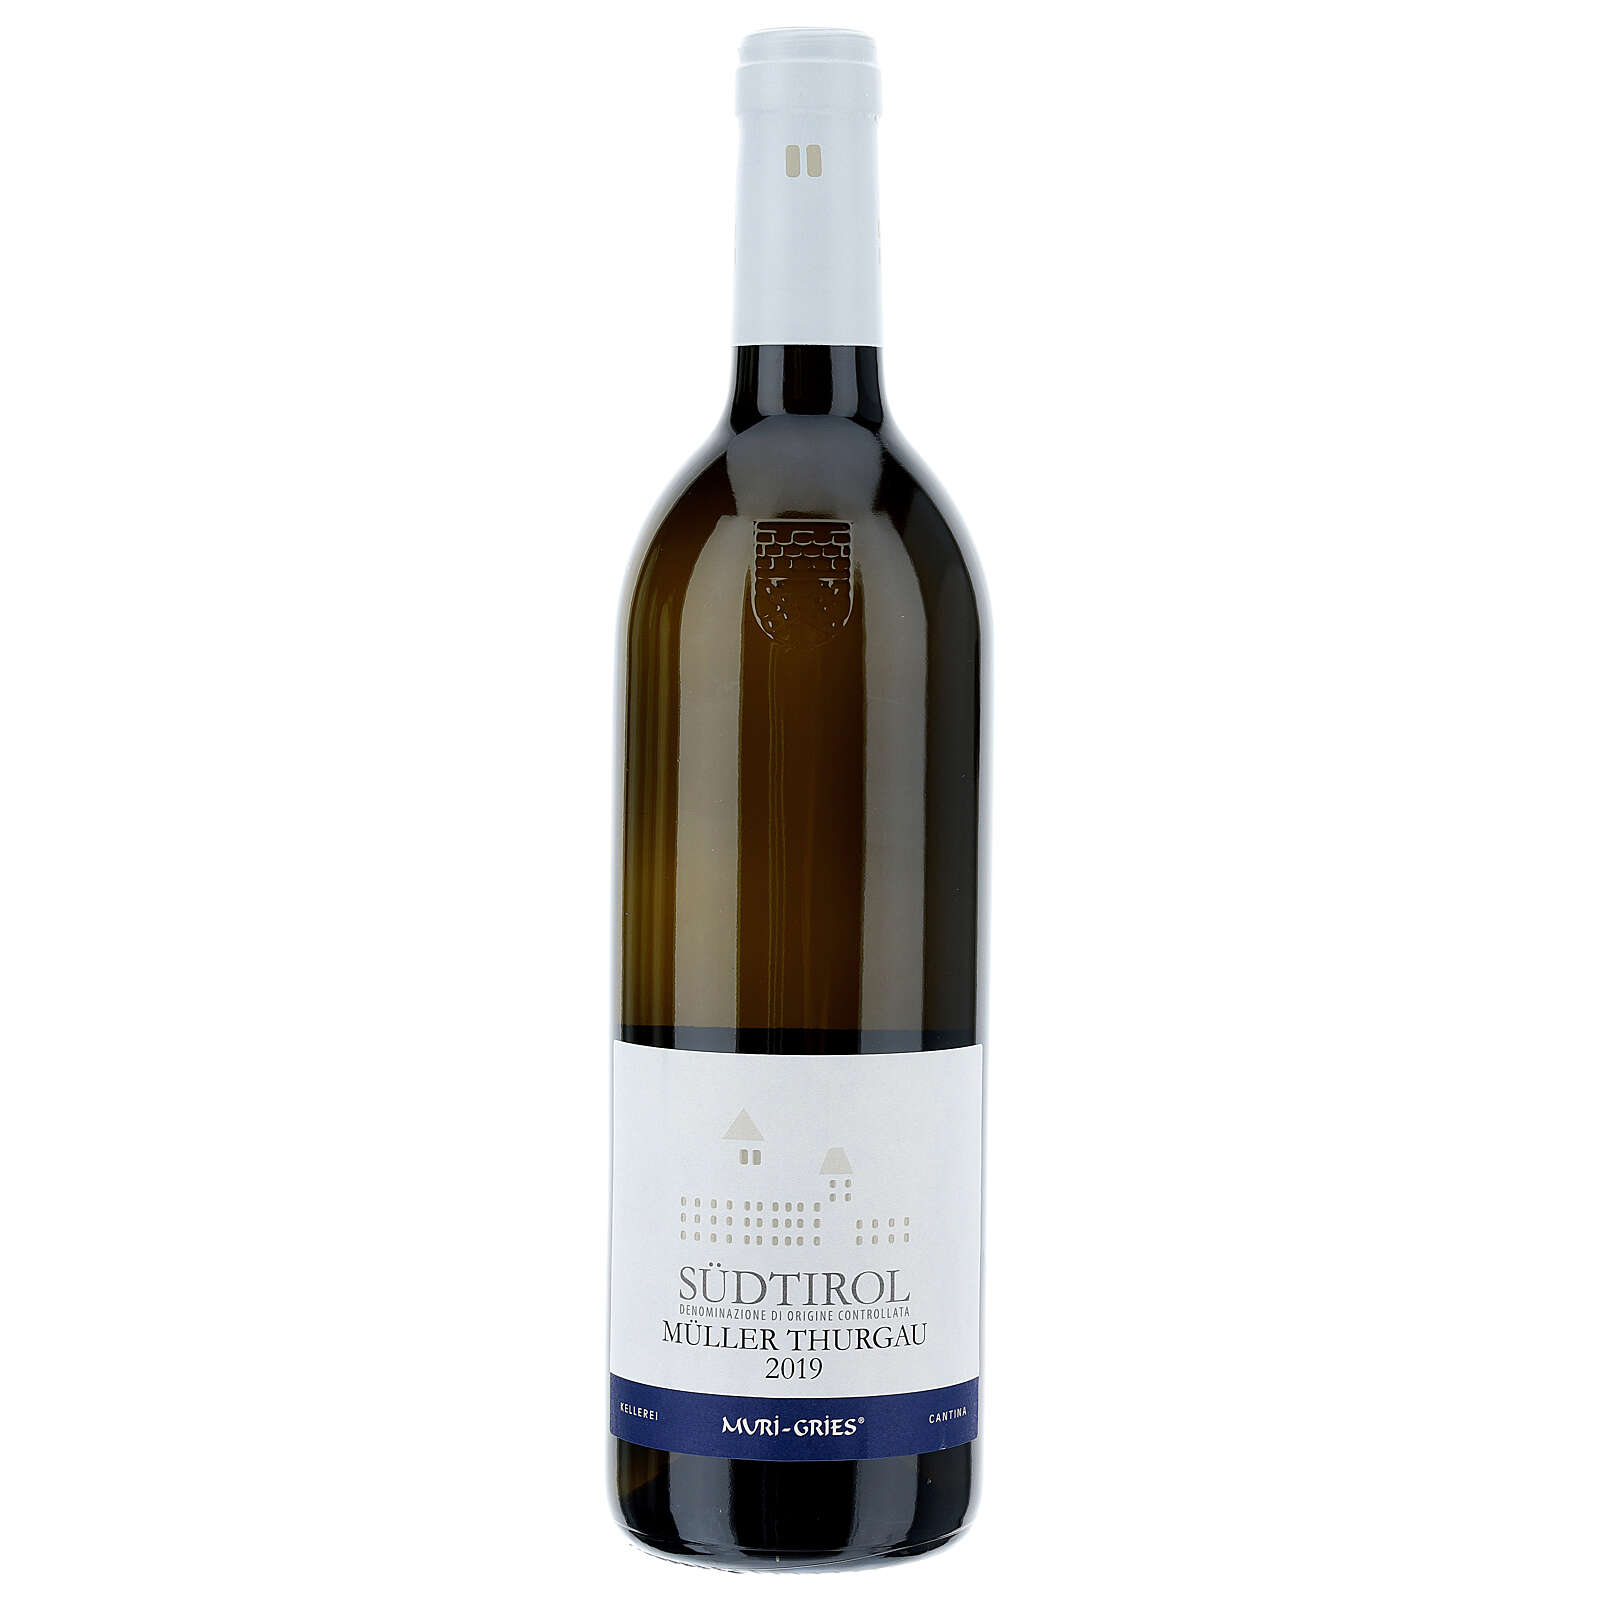 Vino Muller Thurgau DOC 2019 Abbazia Muri Gries 750 ml 3